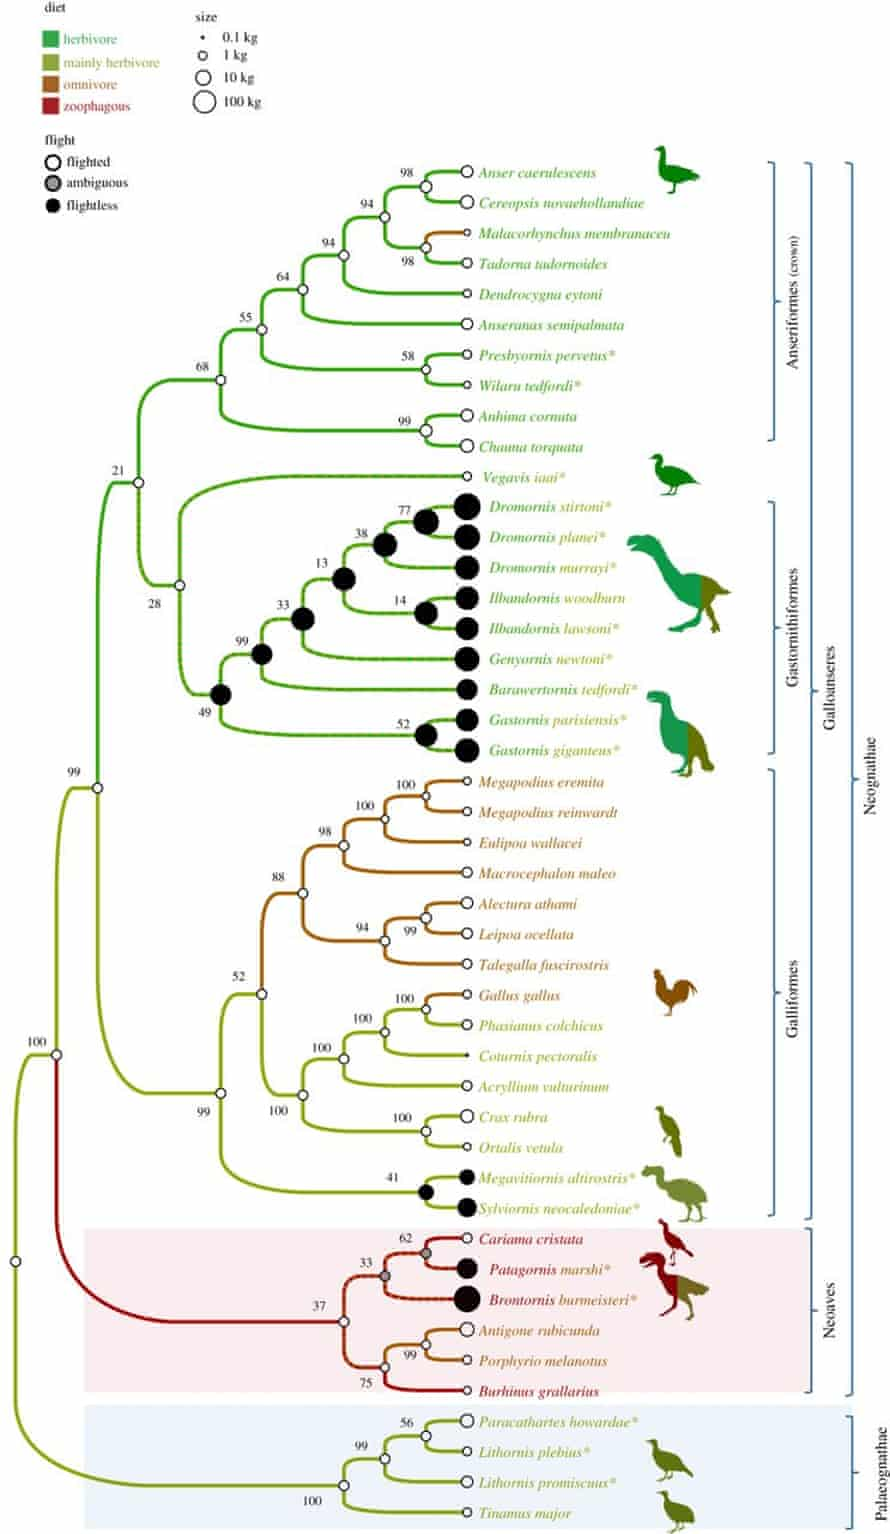 The most parsimonous tree of the relationships between extinct and living Galloanserae retrieved by Worthy et al.'s analyses. Body size is shown by circle size, flight ability by circle shading and diet is indicated by branch colour